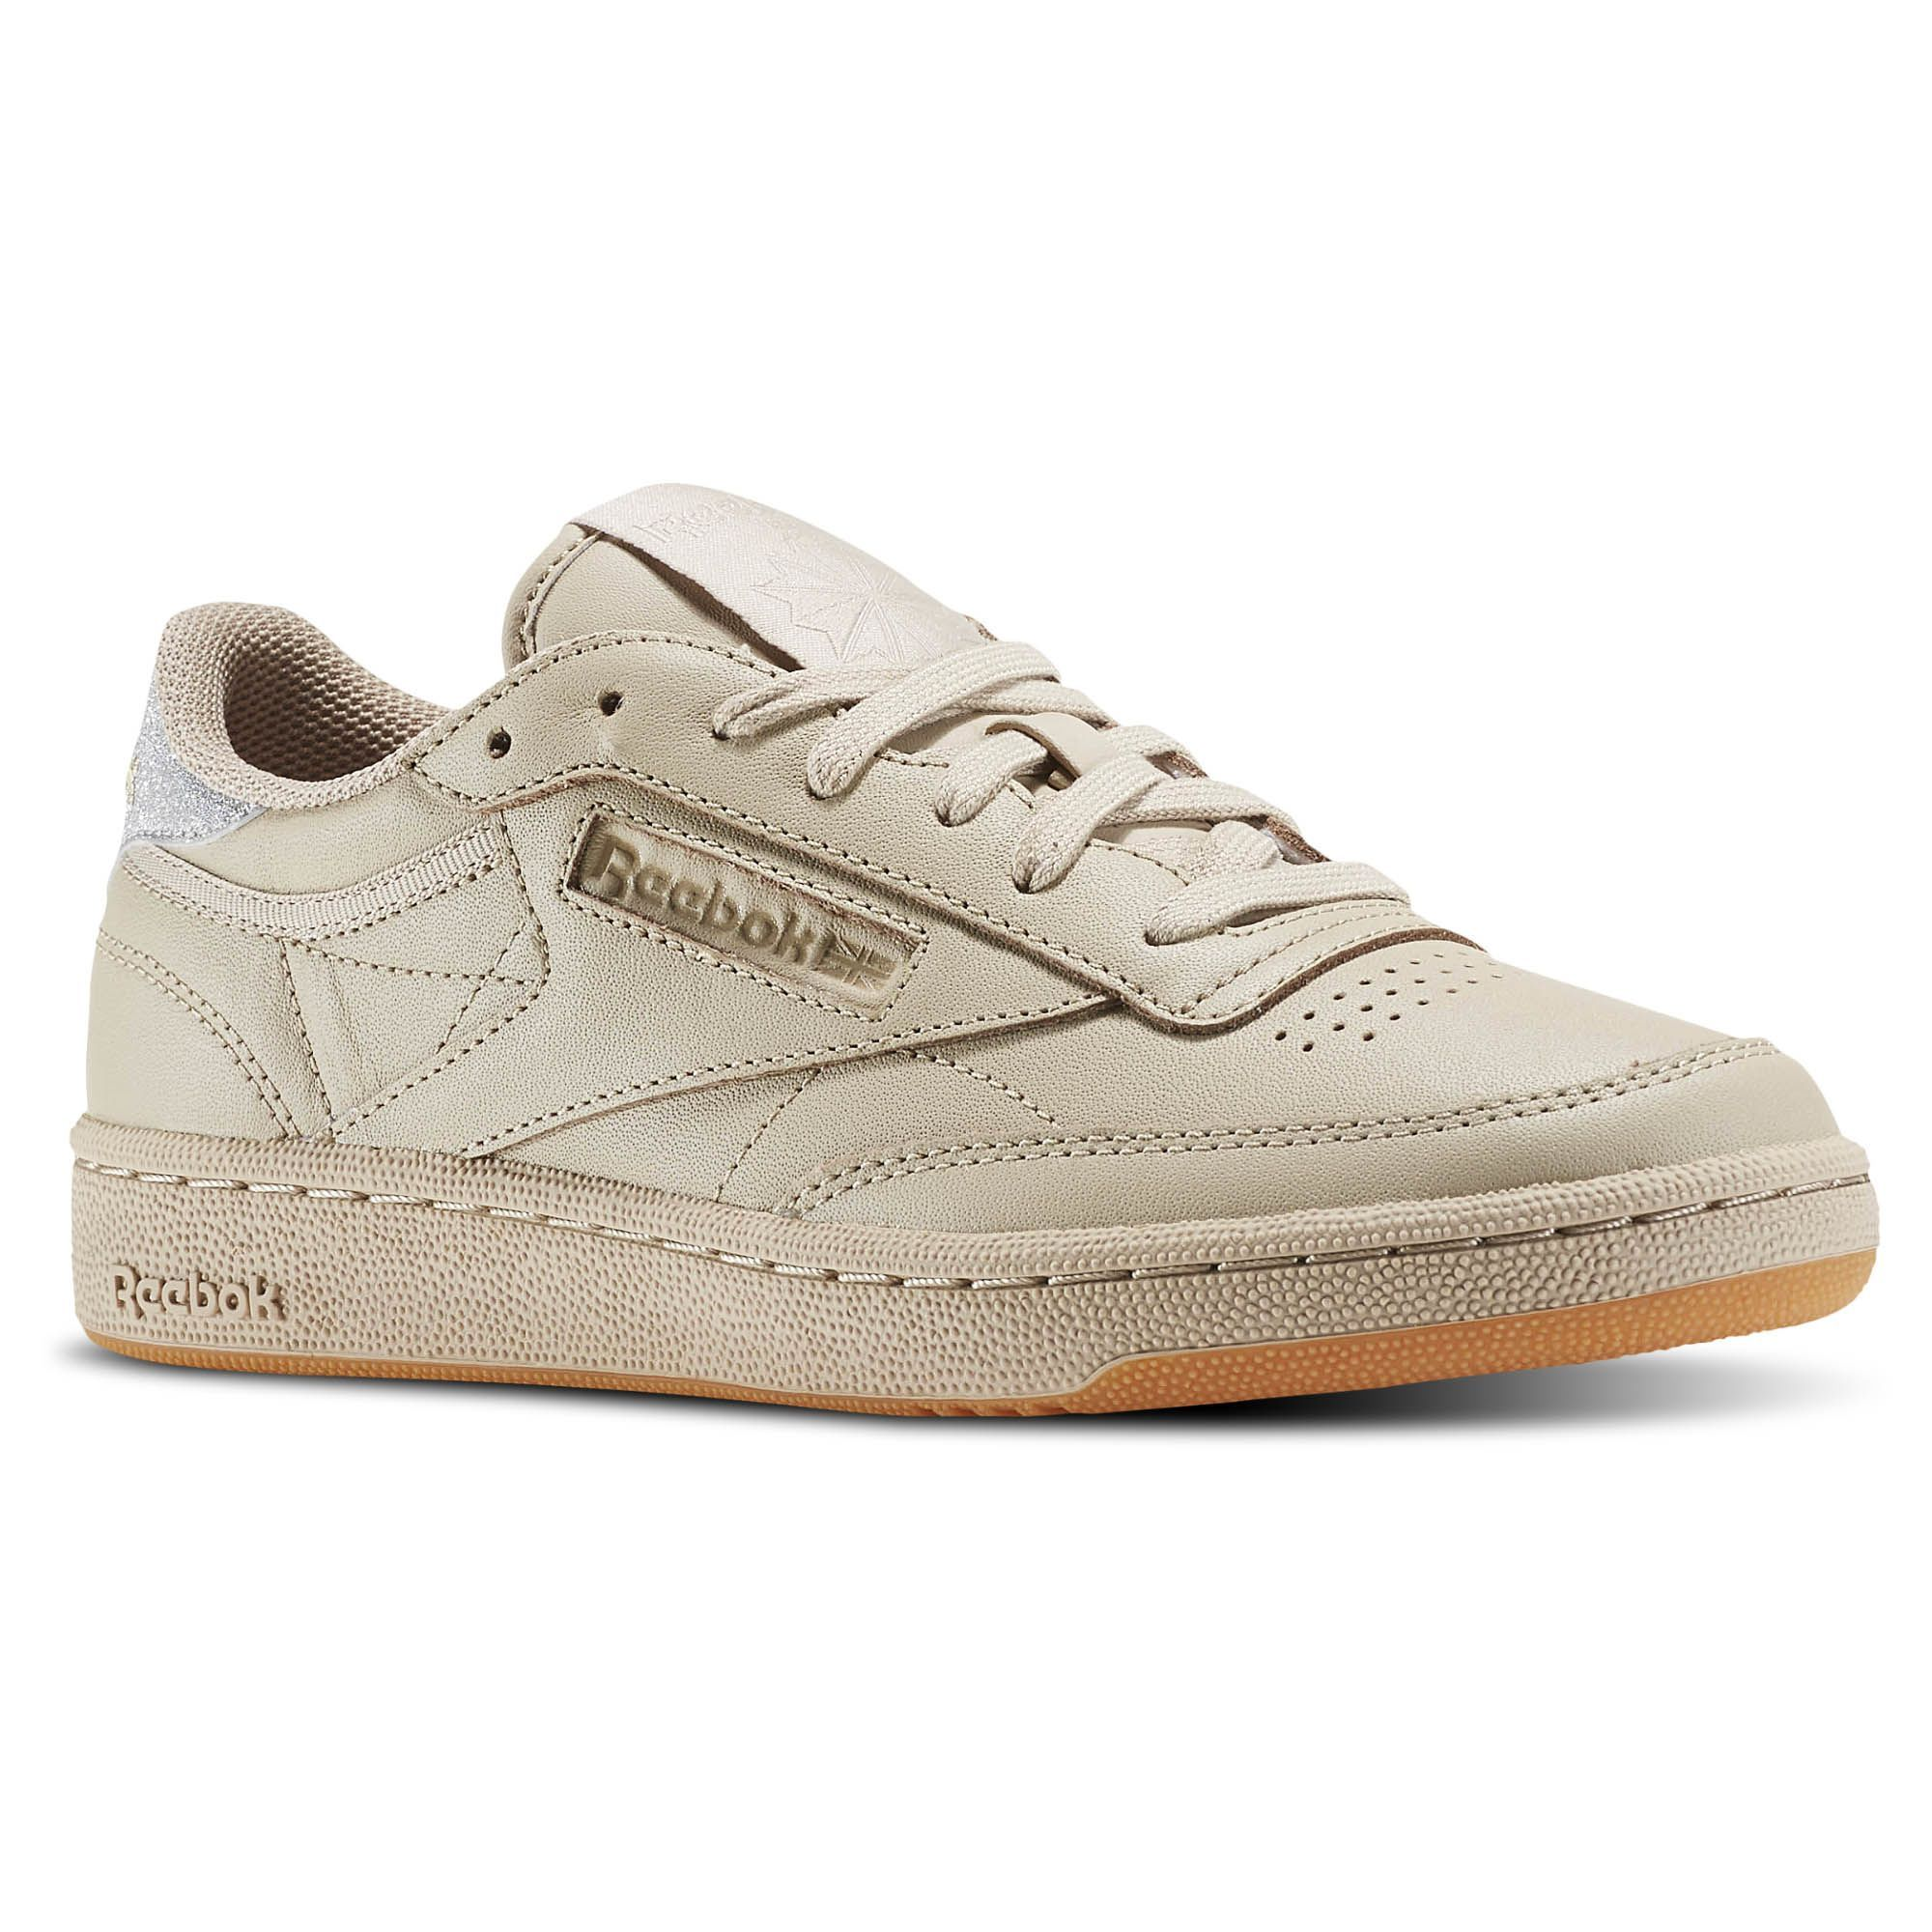 Club | Reebok US. Feminine StyleWomen's ShoesShoes ...